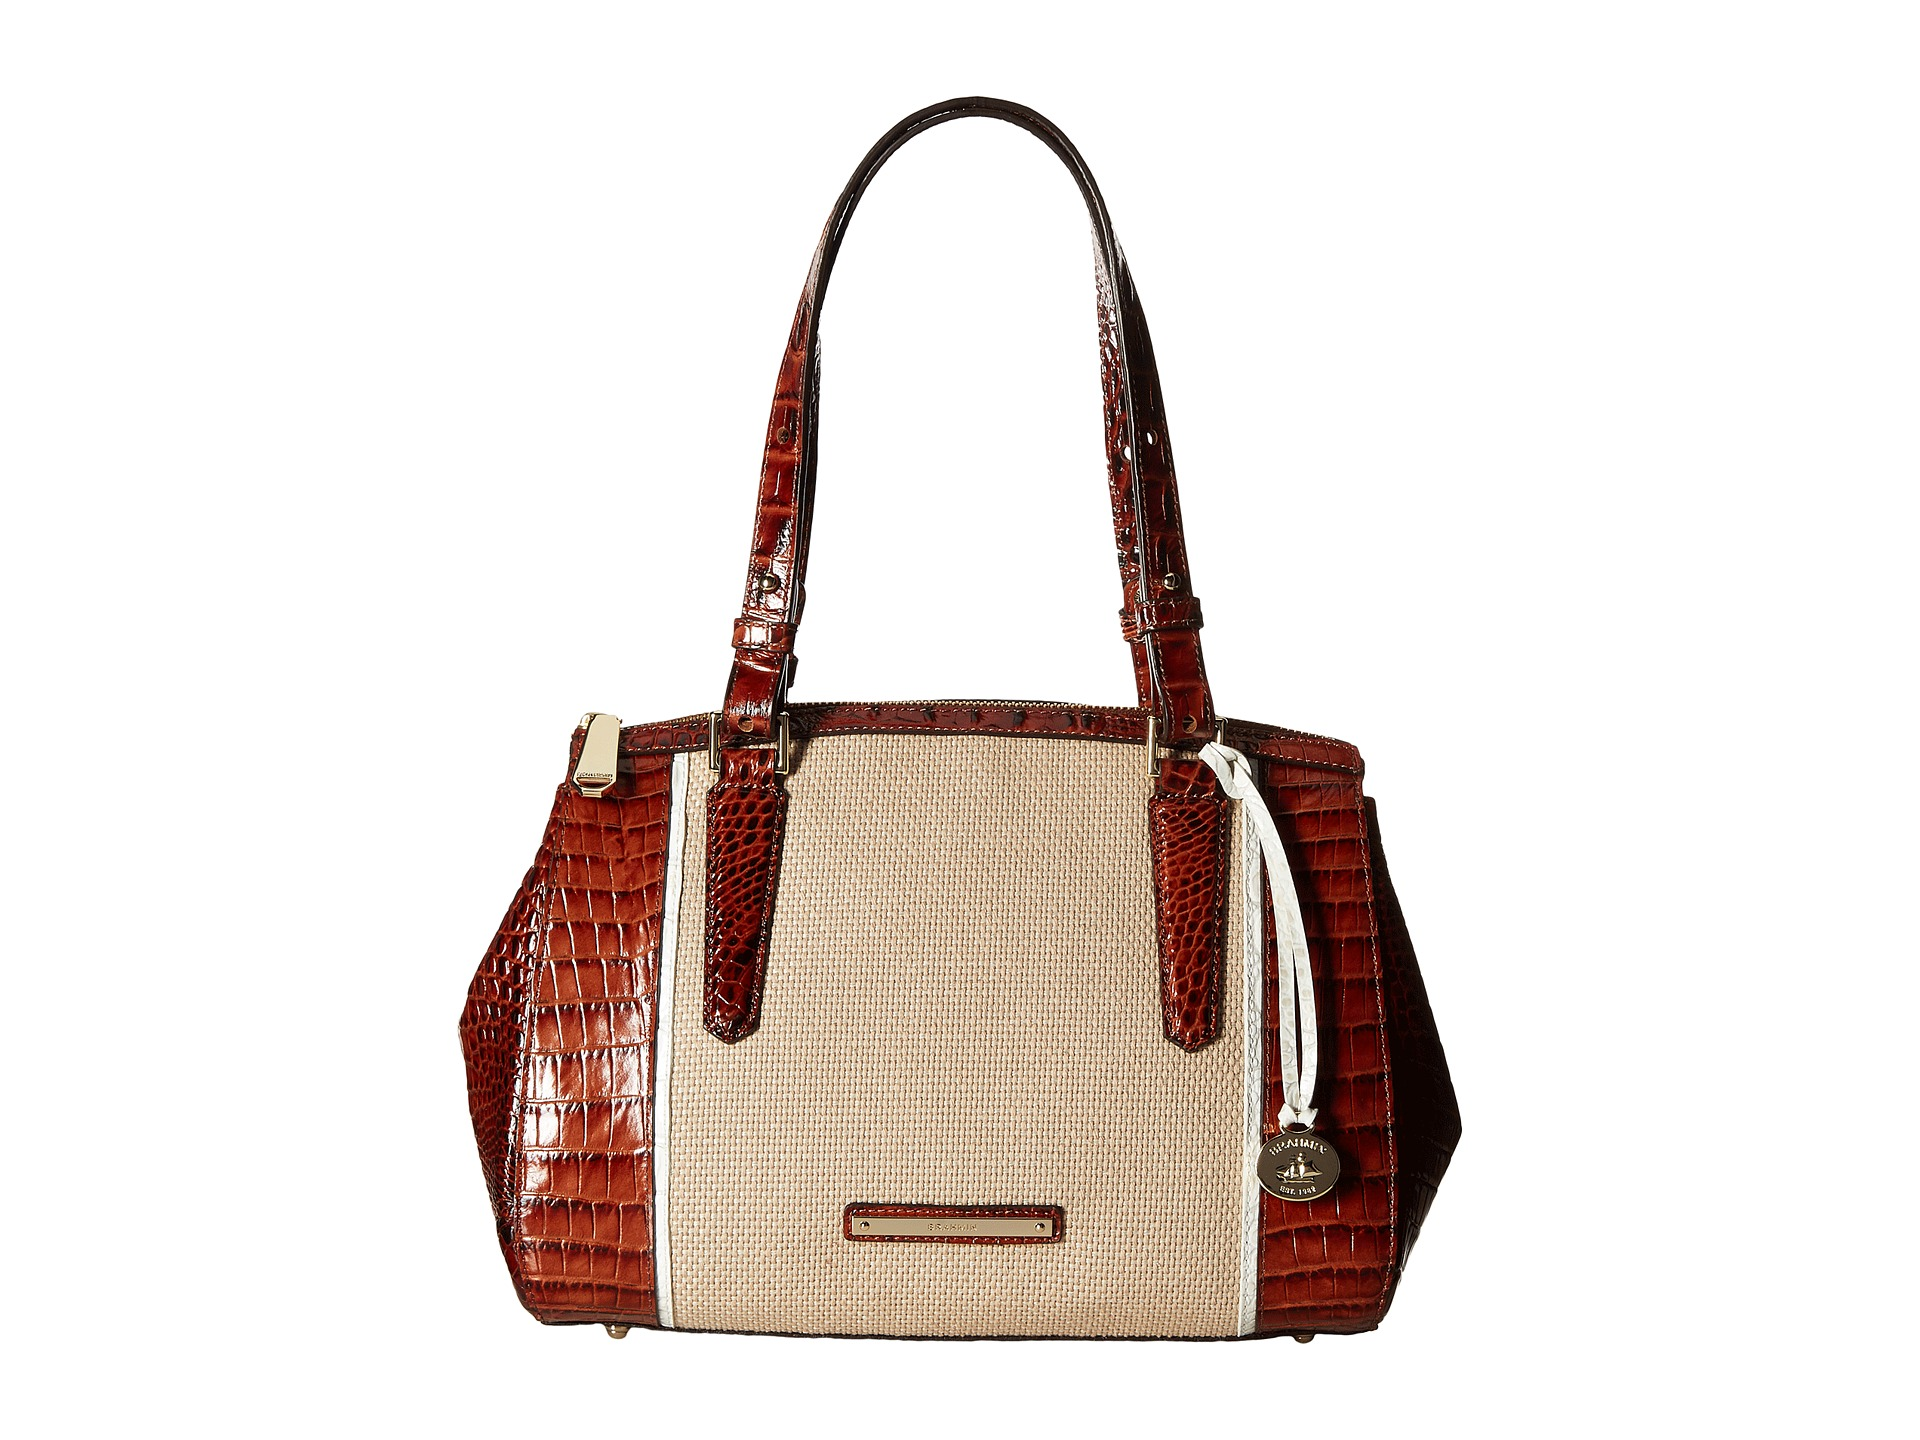 Brahmin Small Lincoln Satchel, Bags, Women | Shipped Free at Zappos